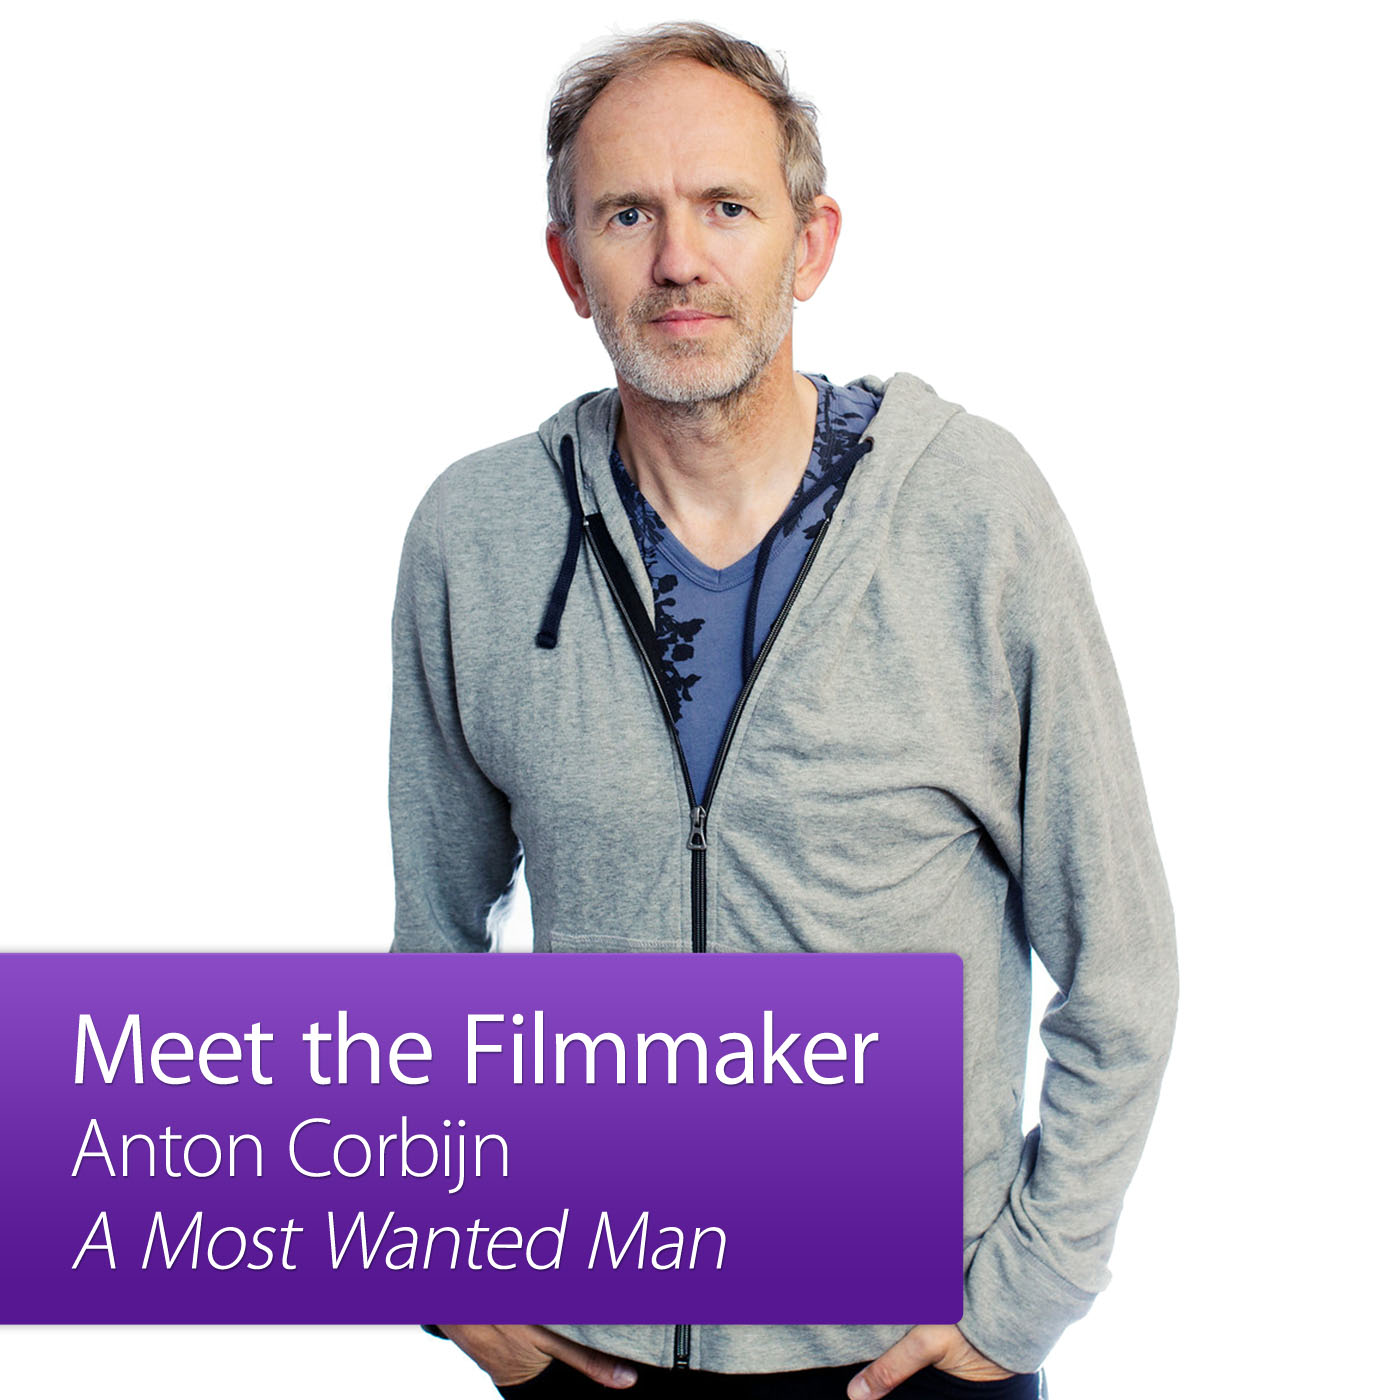 Anton Corbijn: Meet the Filmmaker